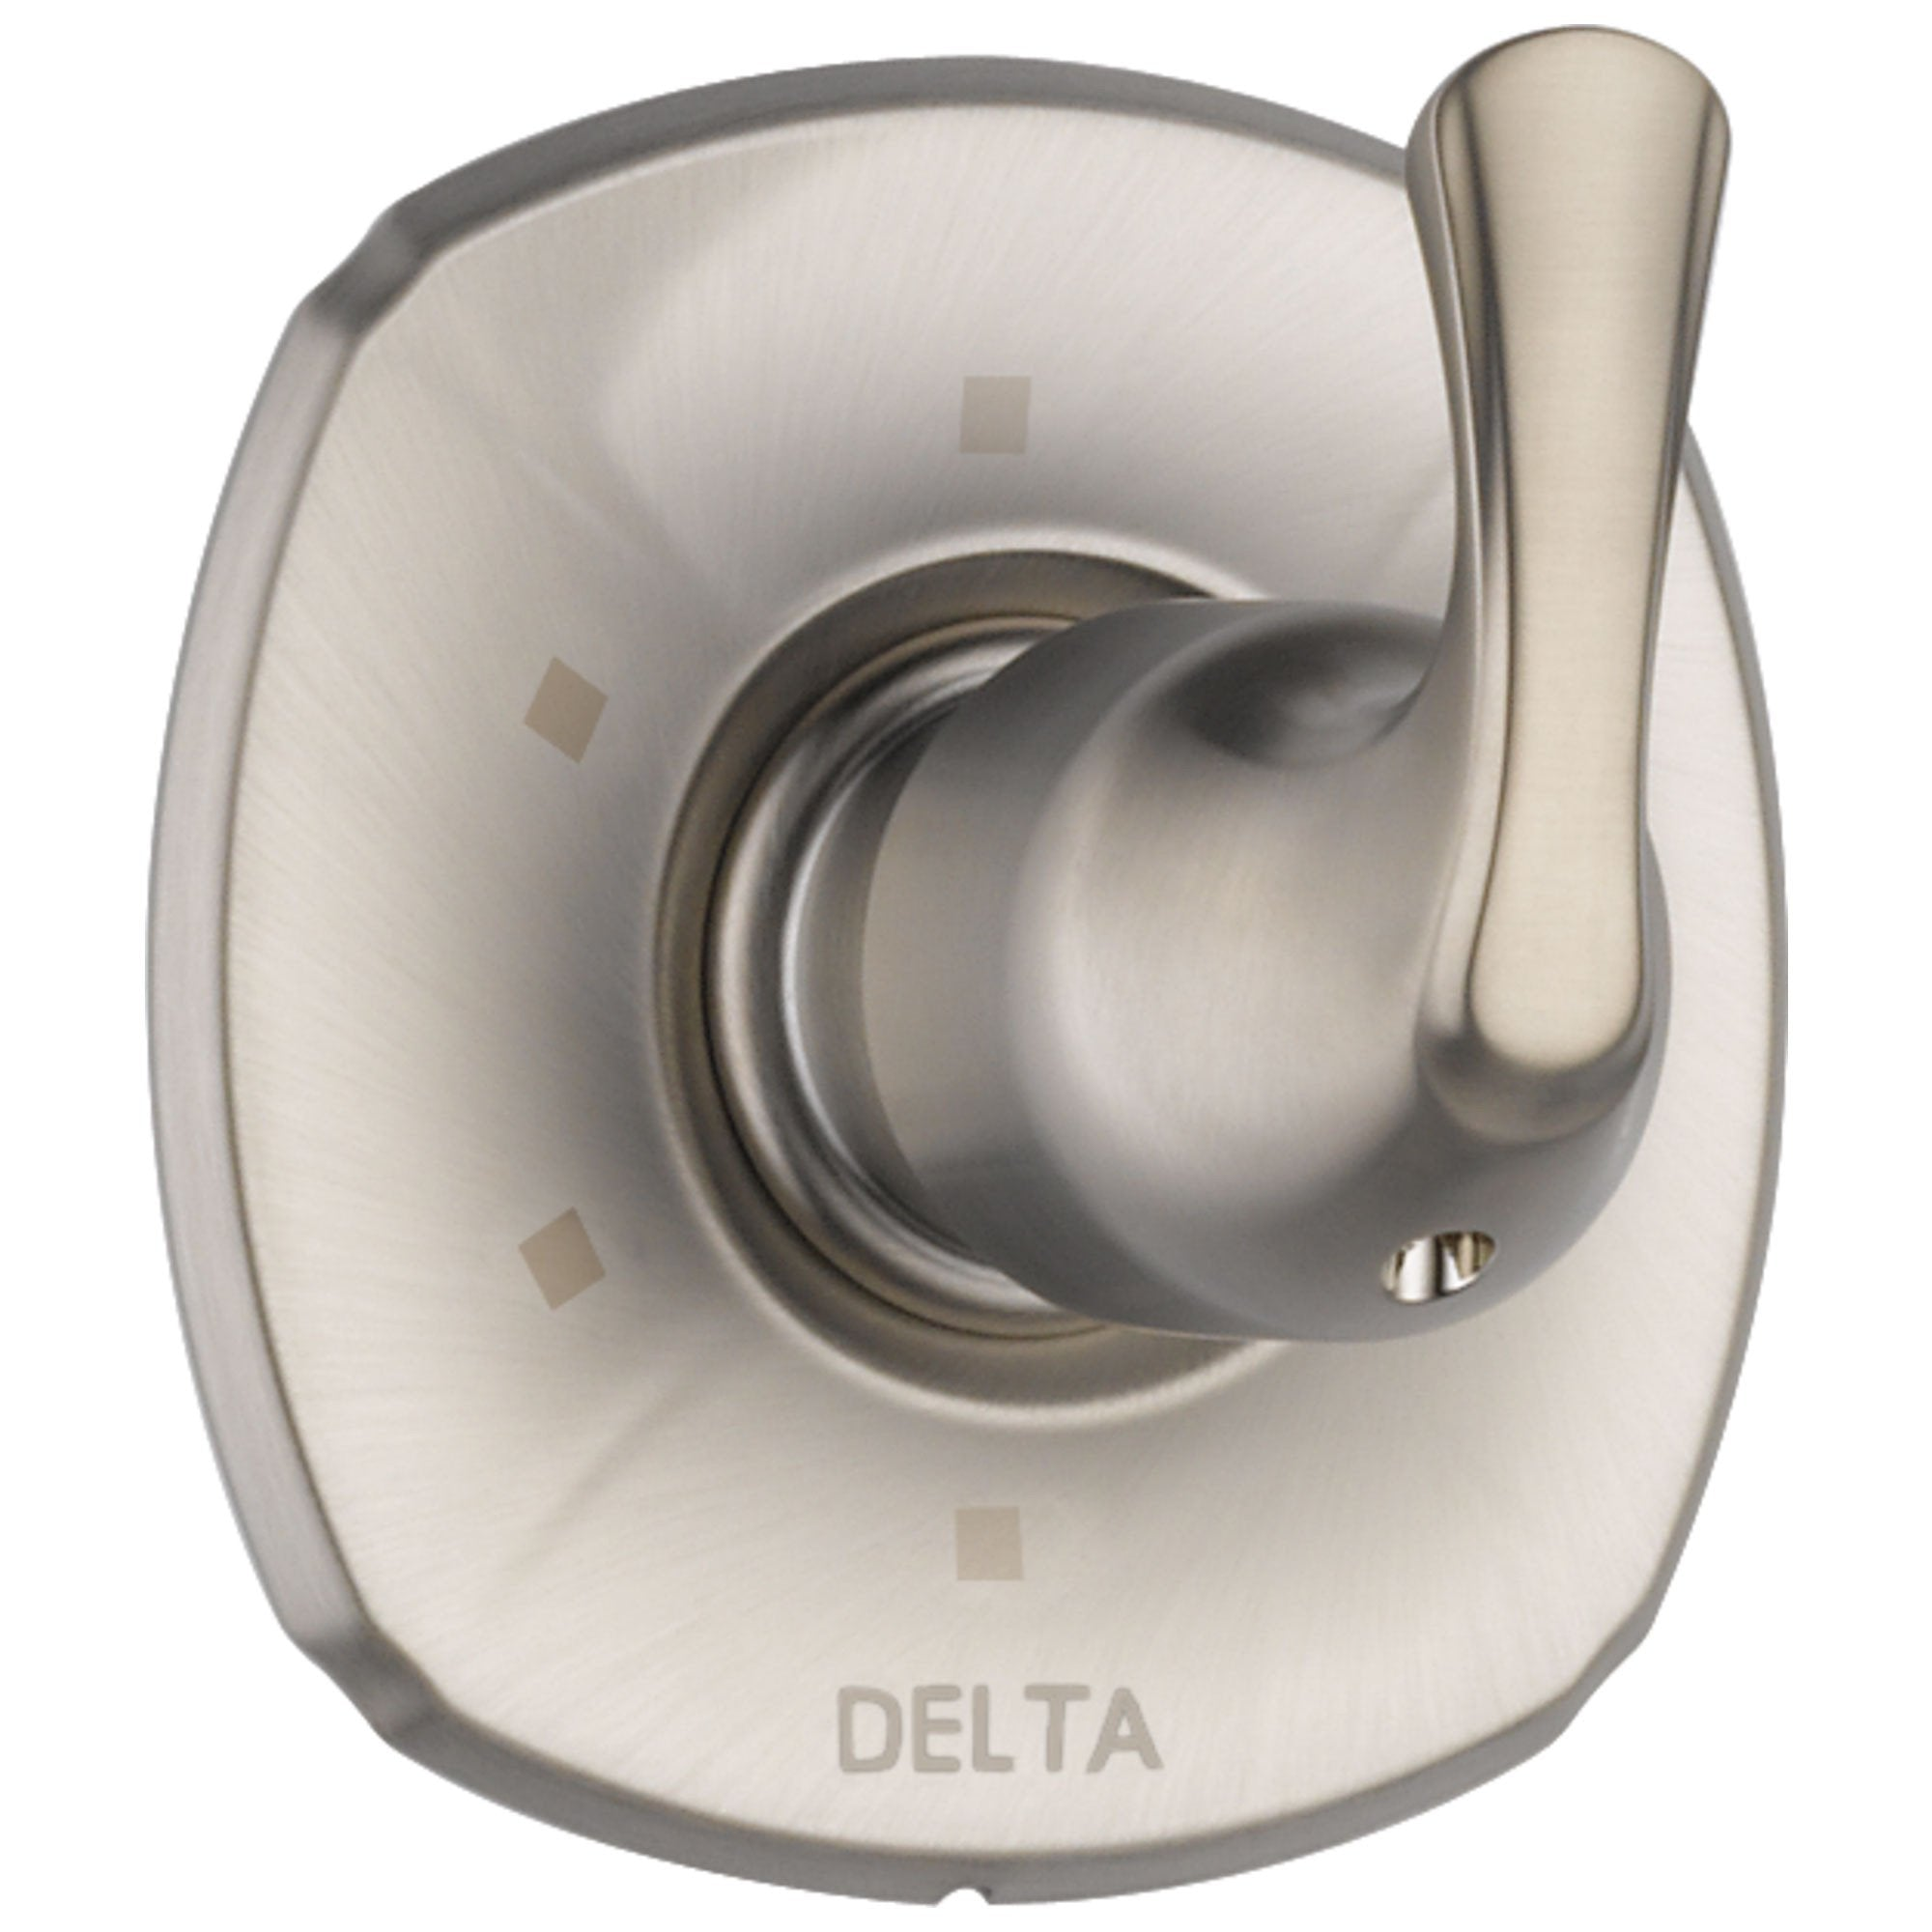 Delta Addison Collection Stainless Steel Finish 6-Setting 3-Port Shower Single Lever Handle Diverter Trim Kit (Requires Rough Valve) DT11992SS